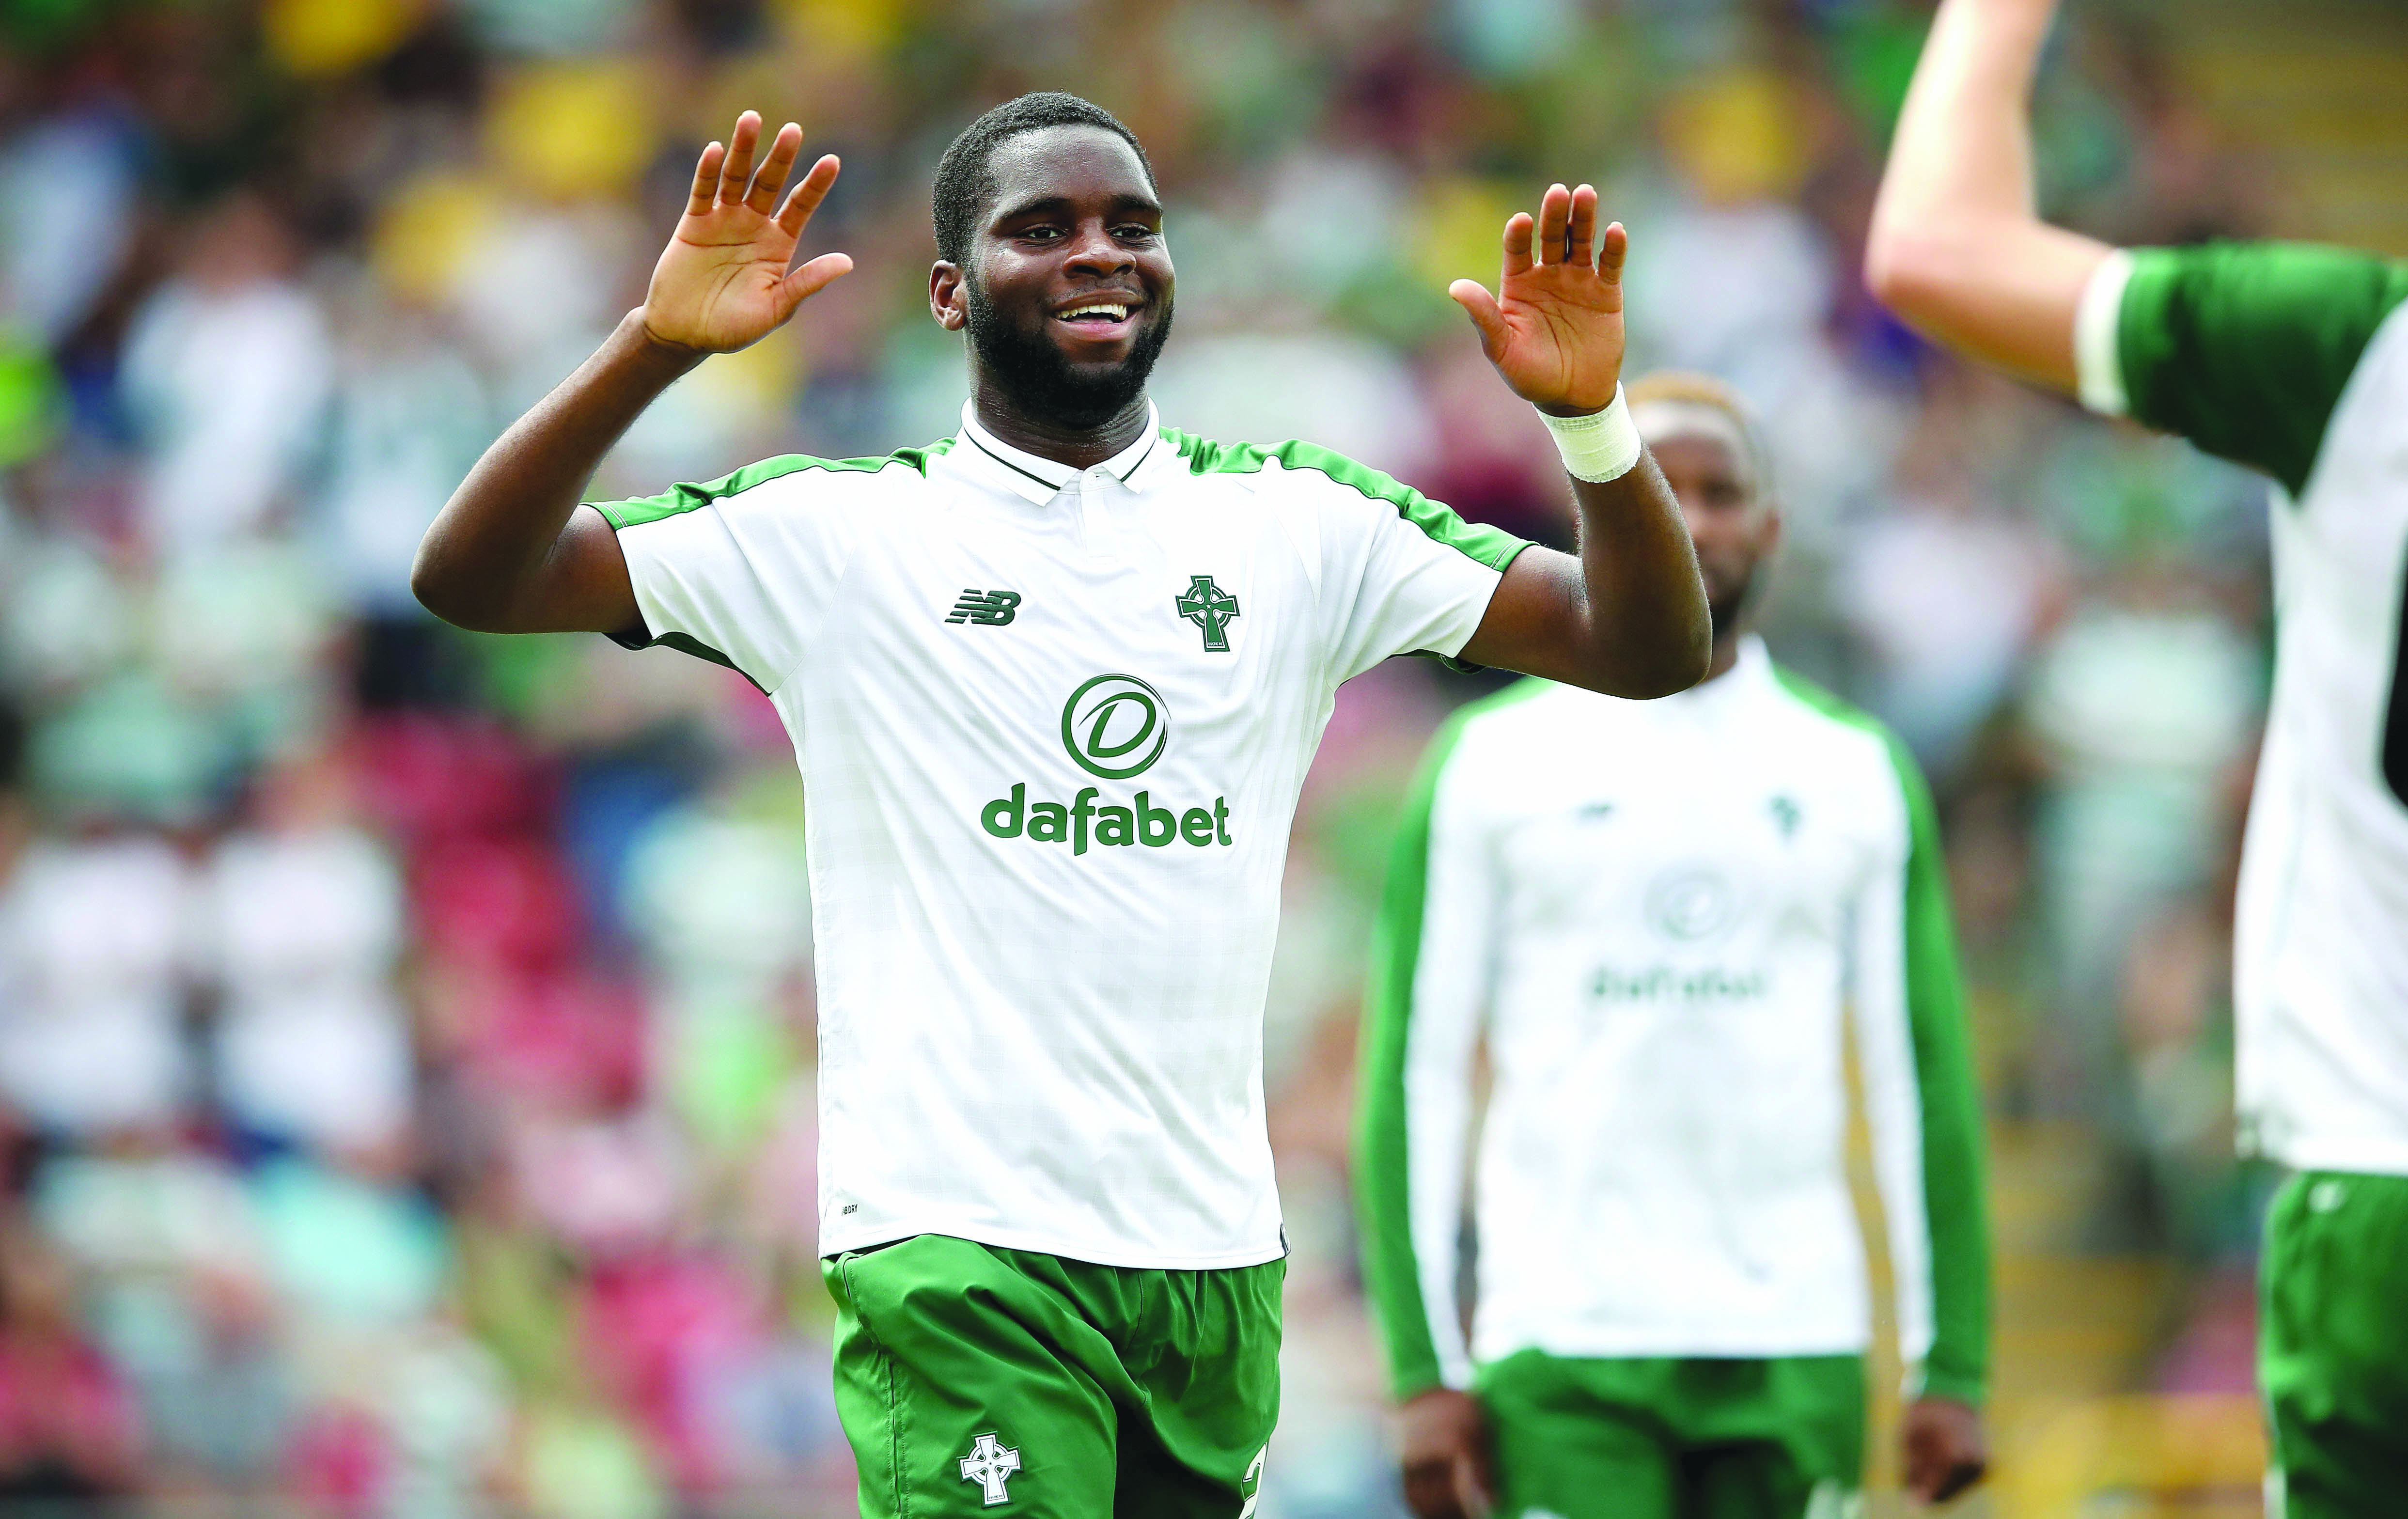 Odsonne Edouard's departure from Celtic Park looks imminent